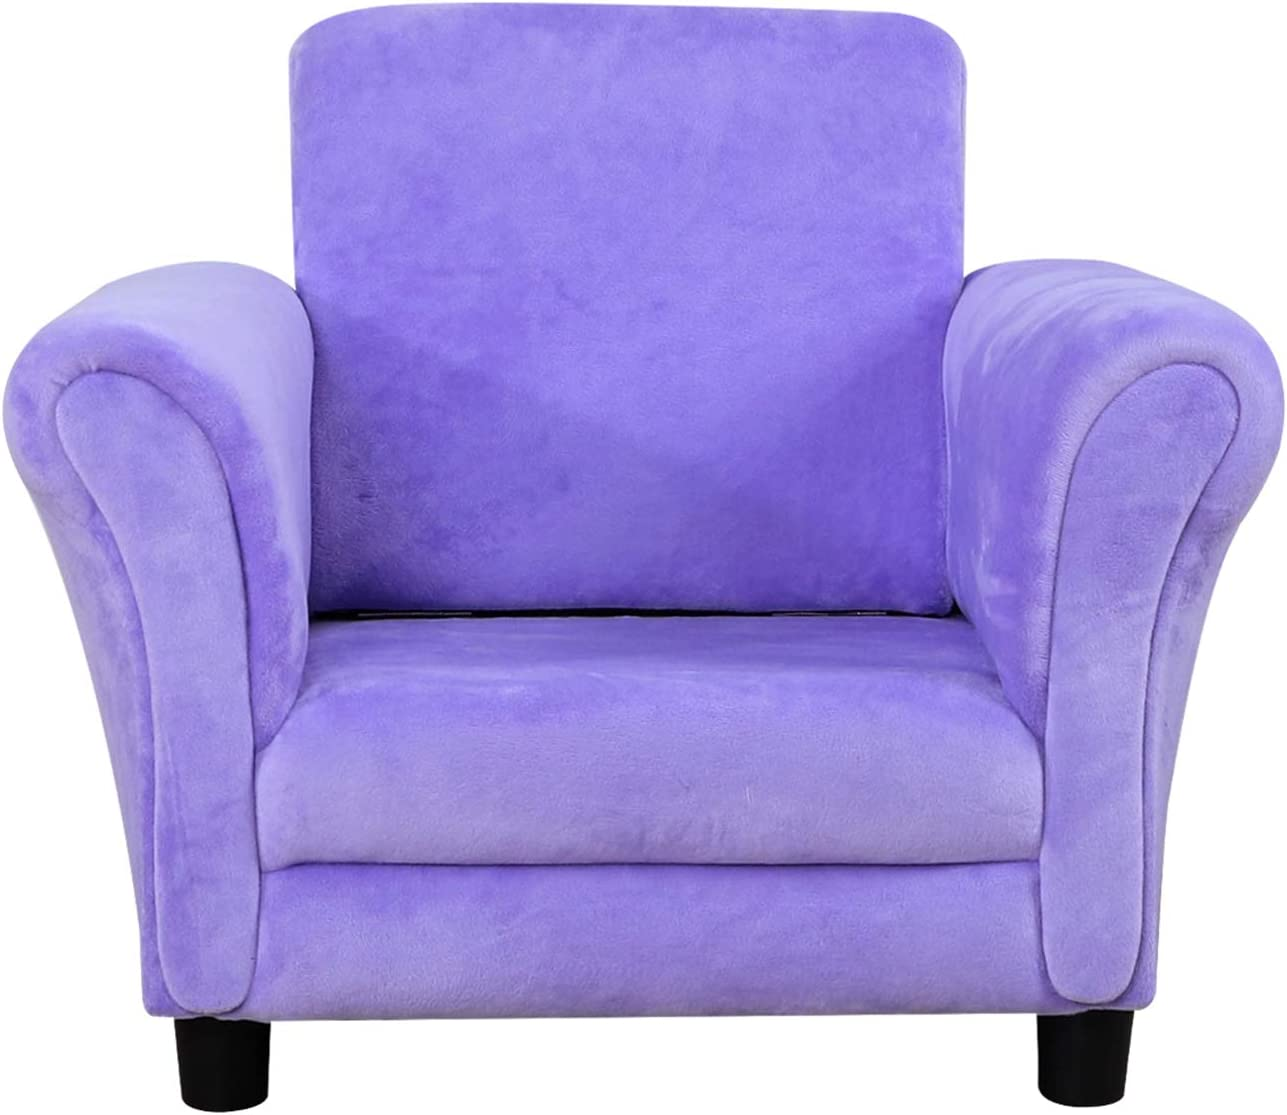 Kid Loveseat and Kid Upholstered Chair,with Luxury Velvet Fabric for Kid Gift Pink Kid Couch Sofa